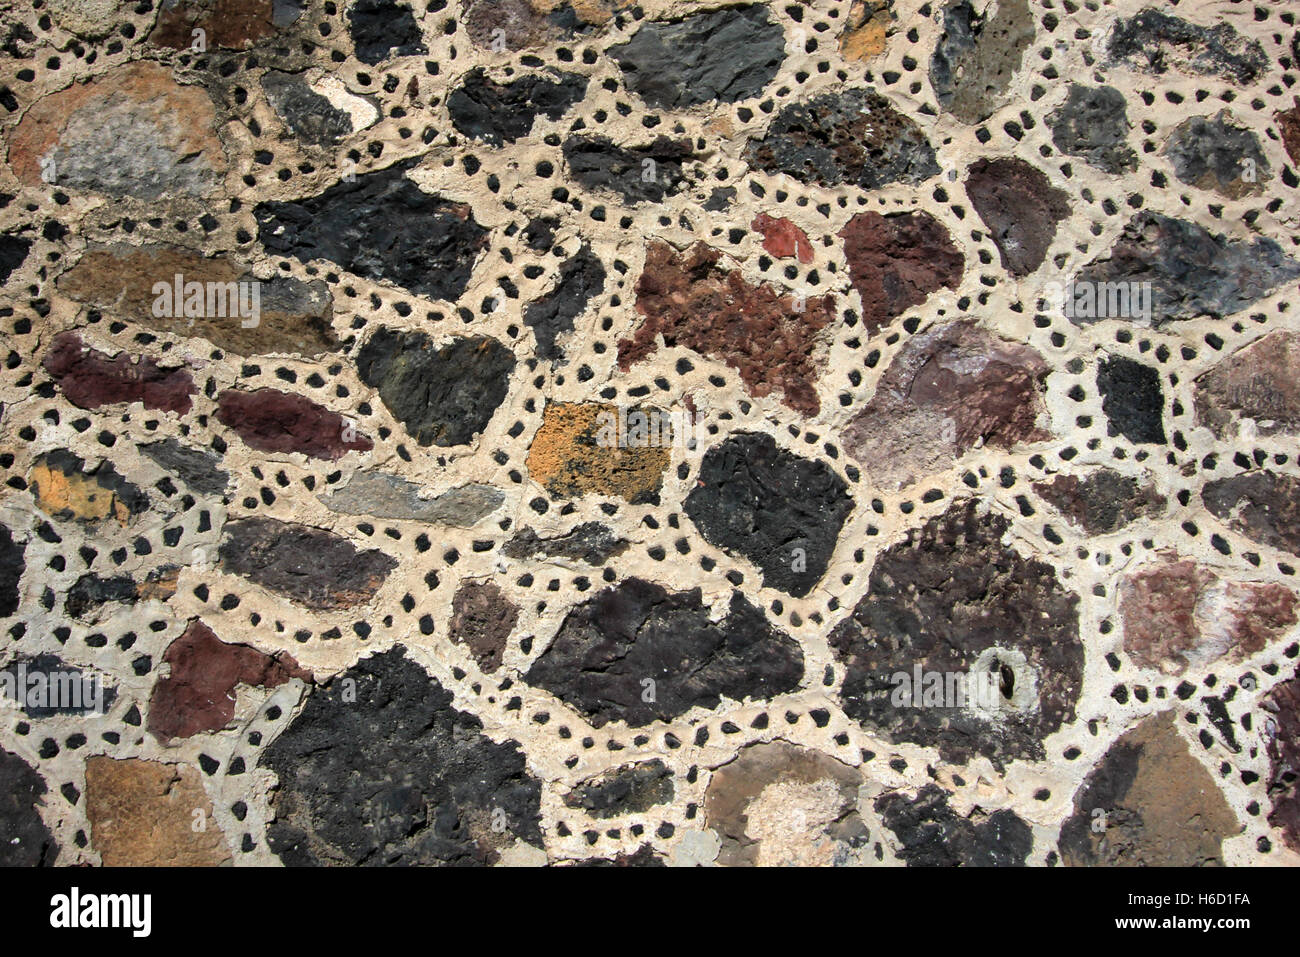 Stones at the wall, pyramid of the moon - Stock Image